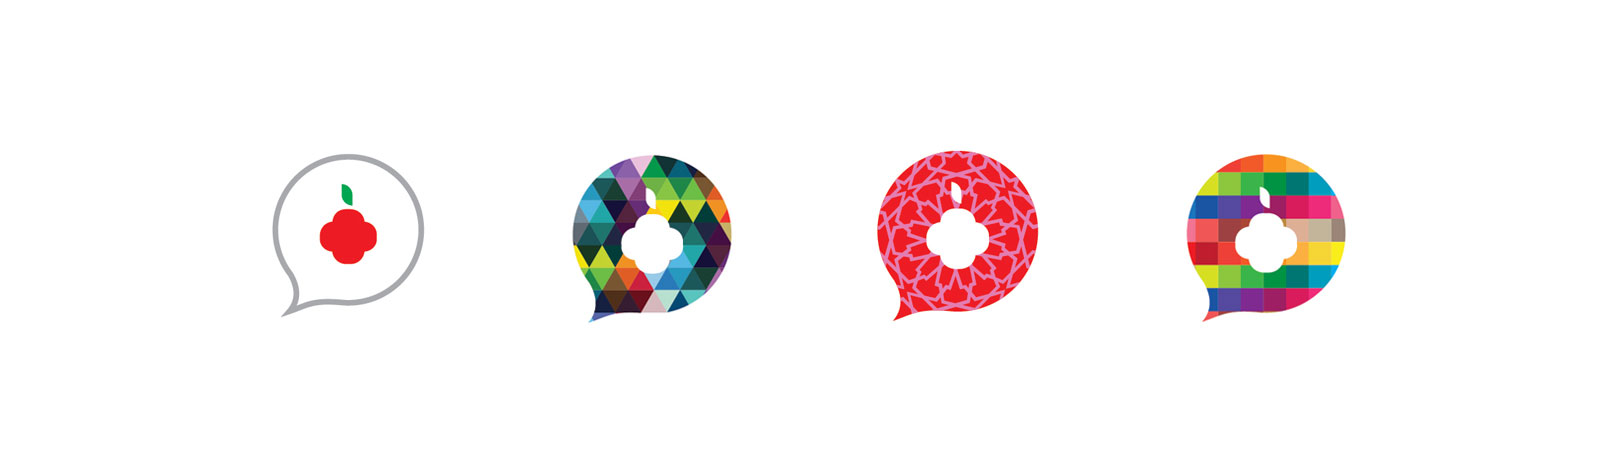 youngberry-logo-adaptations-4-wide